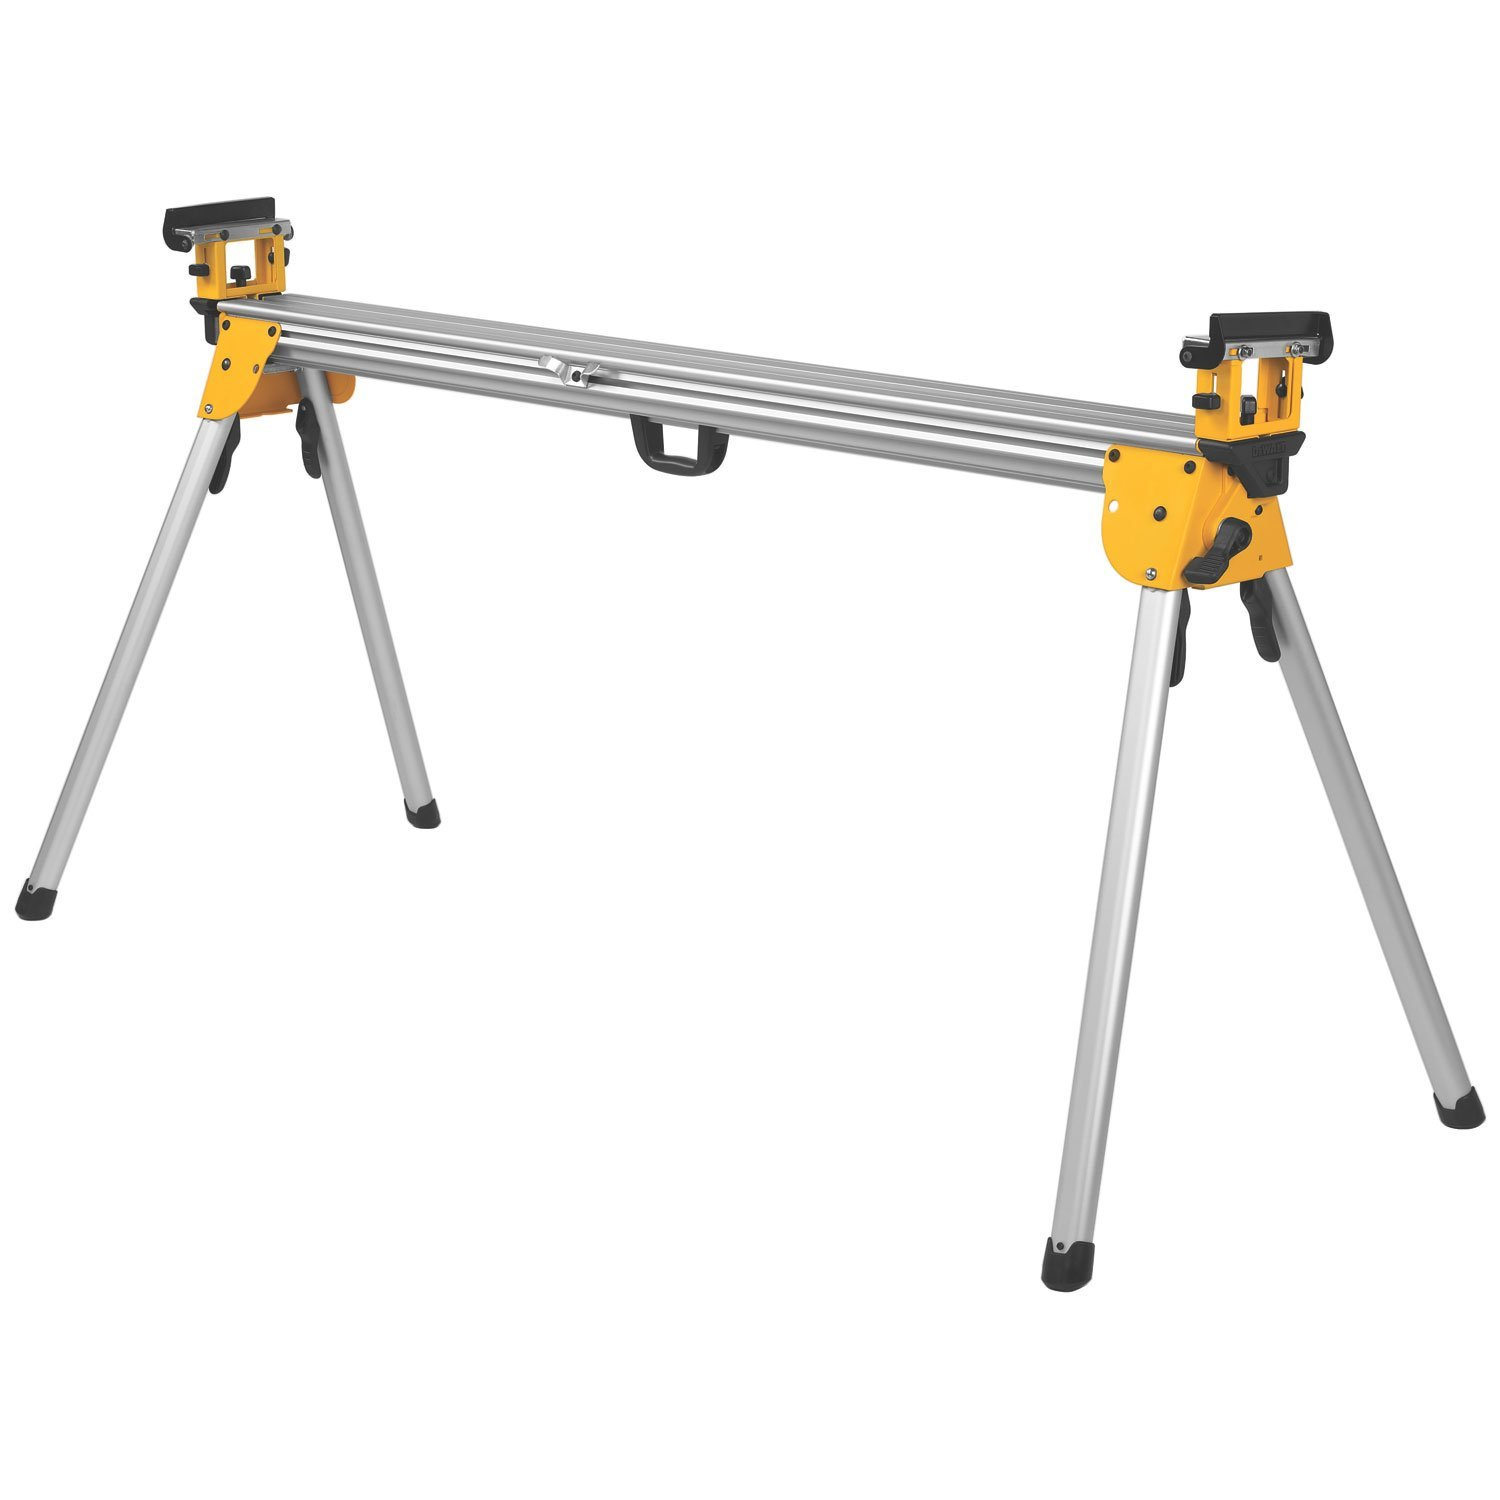 Dewalt DWX723 Saw Stand Review